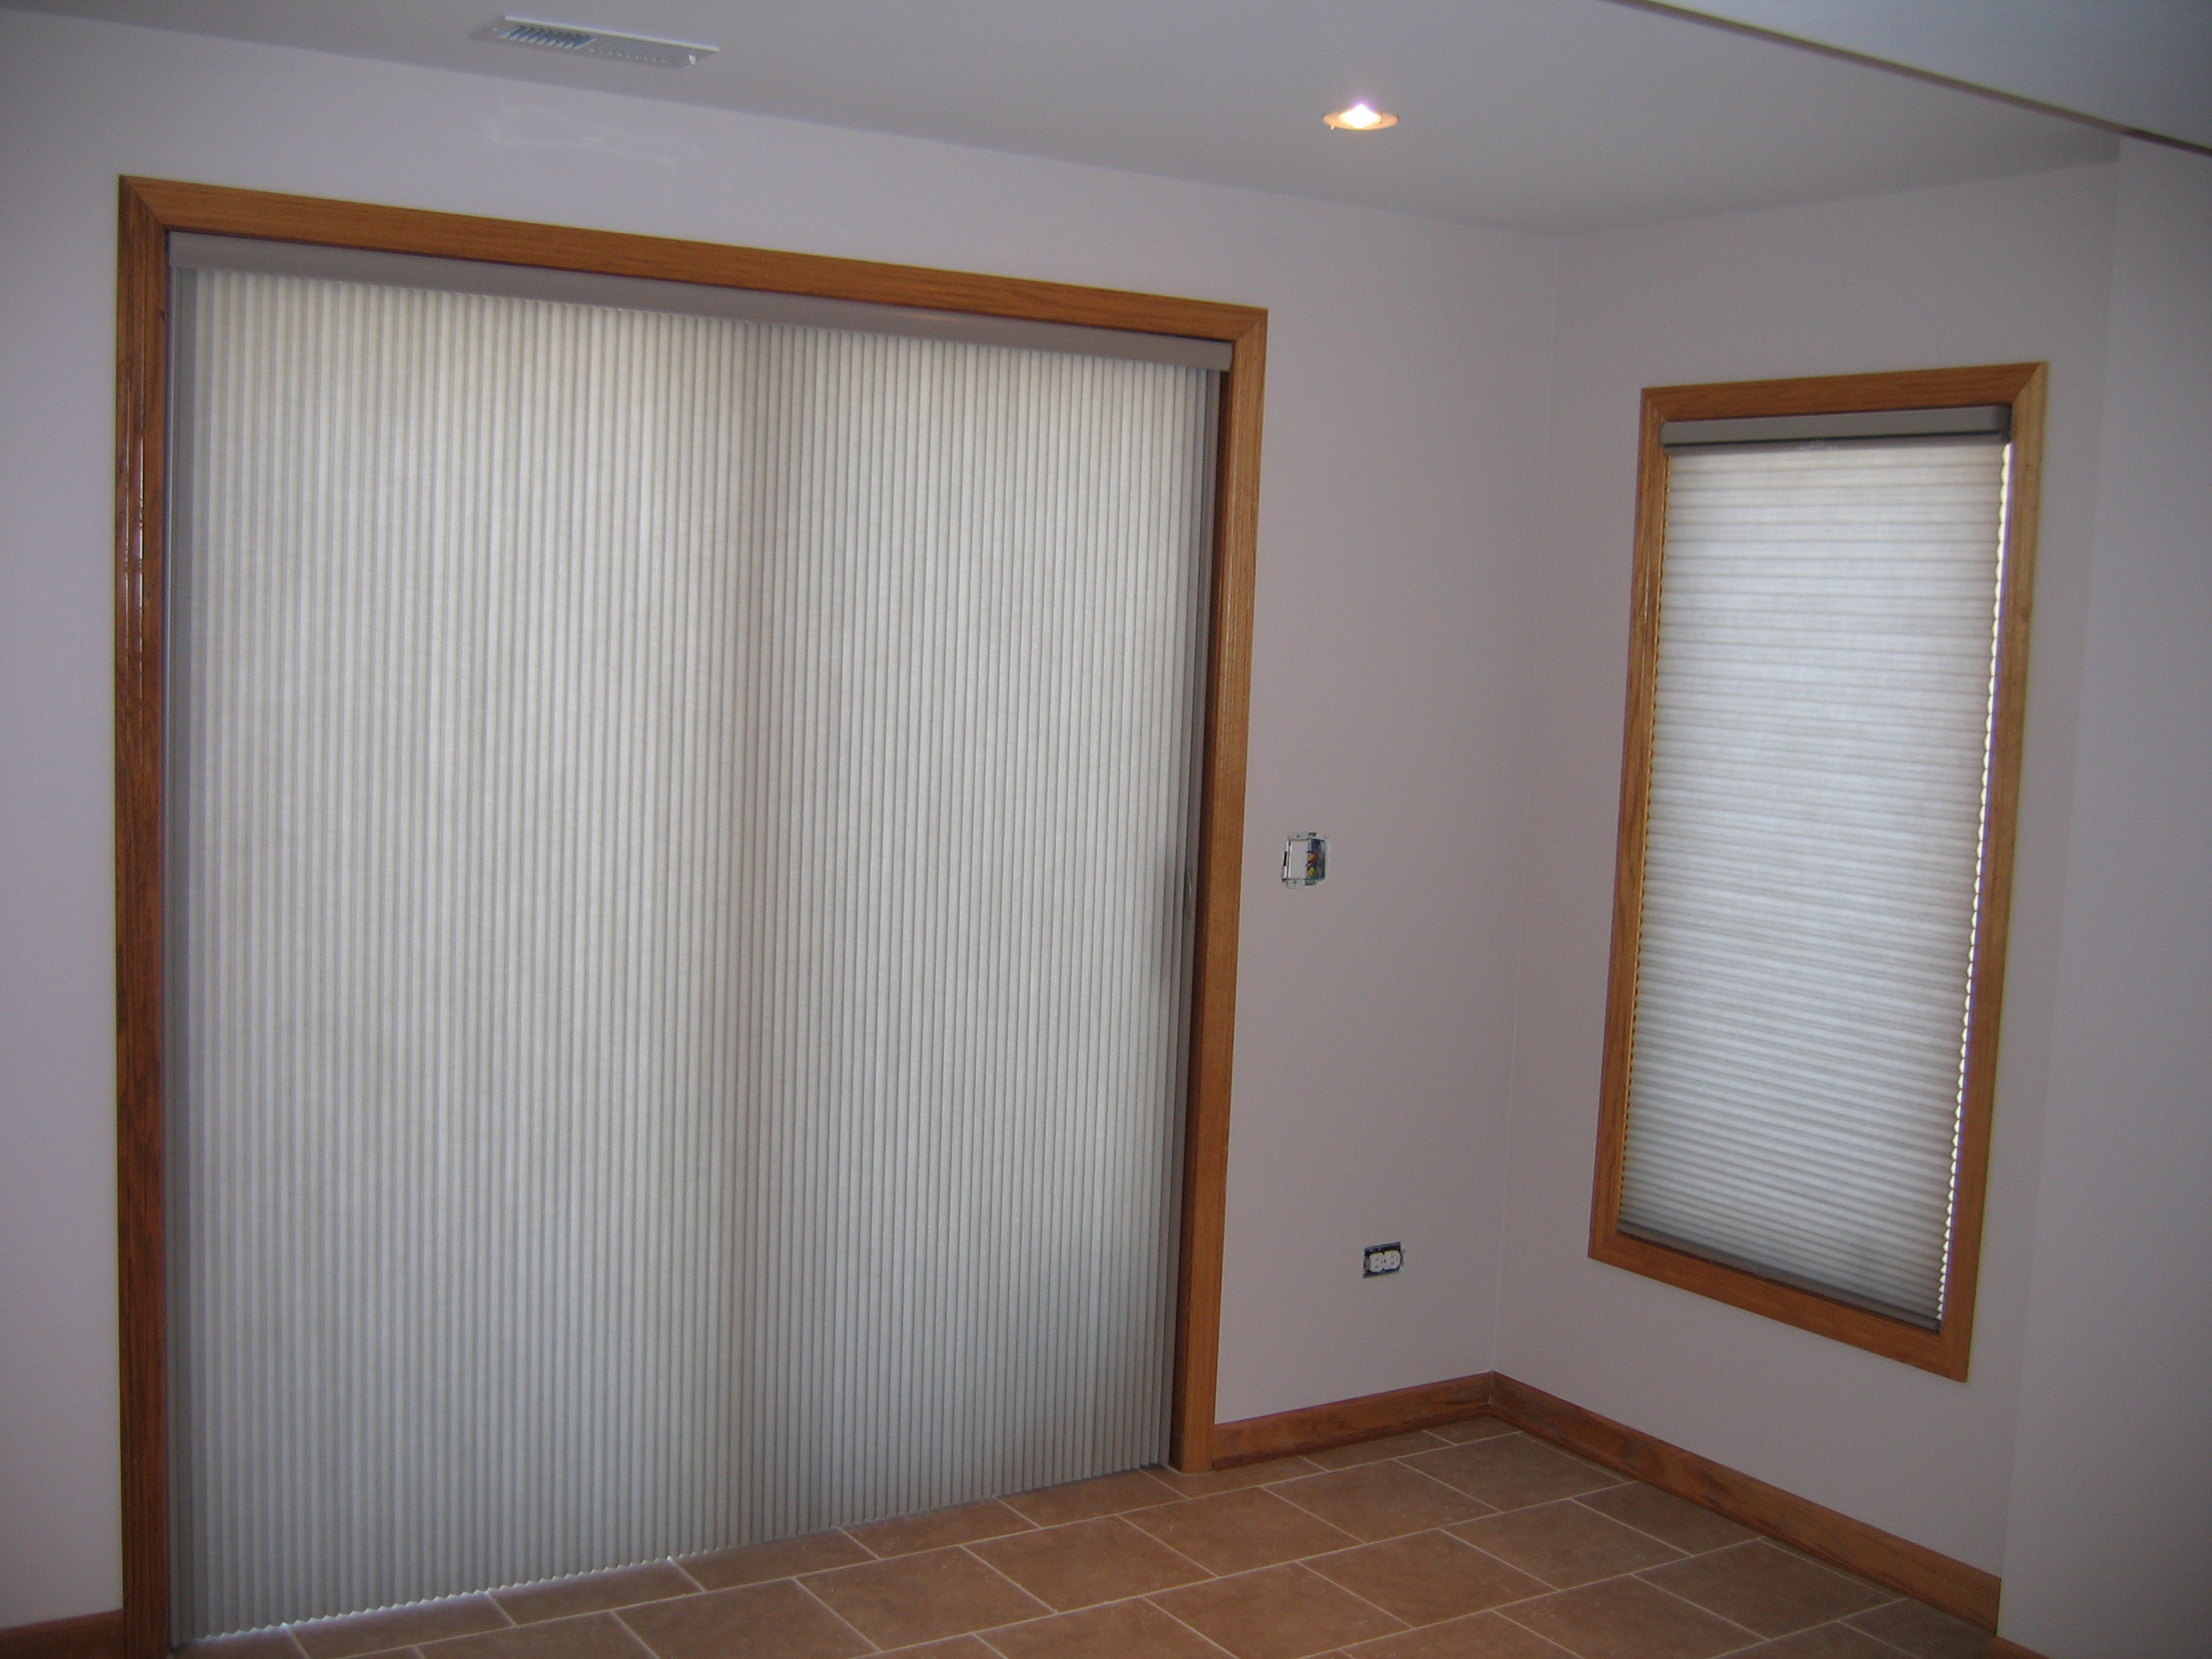 Pictures Of Window Treatments For Sliding Patio Doors: Patio And Sliding Doors And Functional Window Treatments